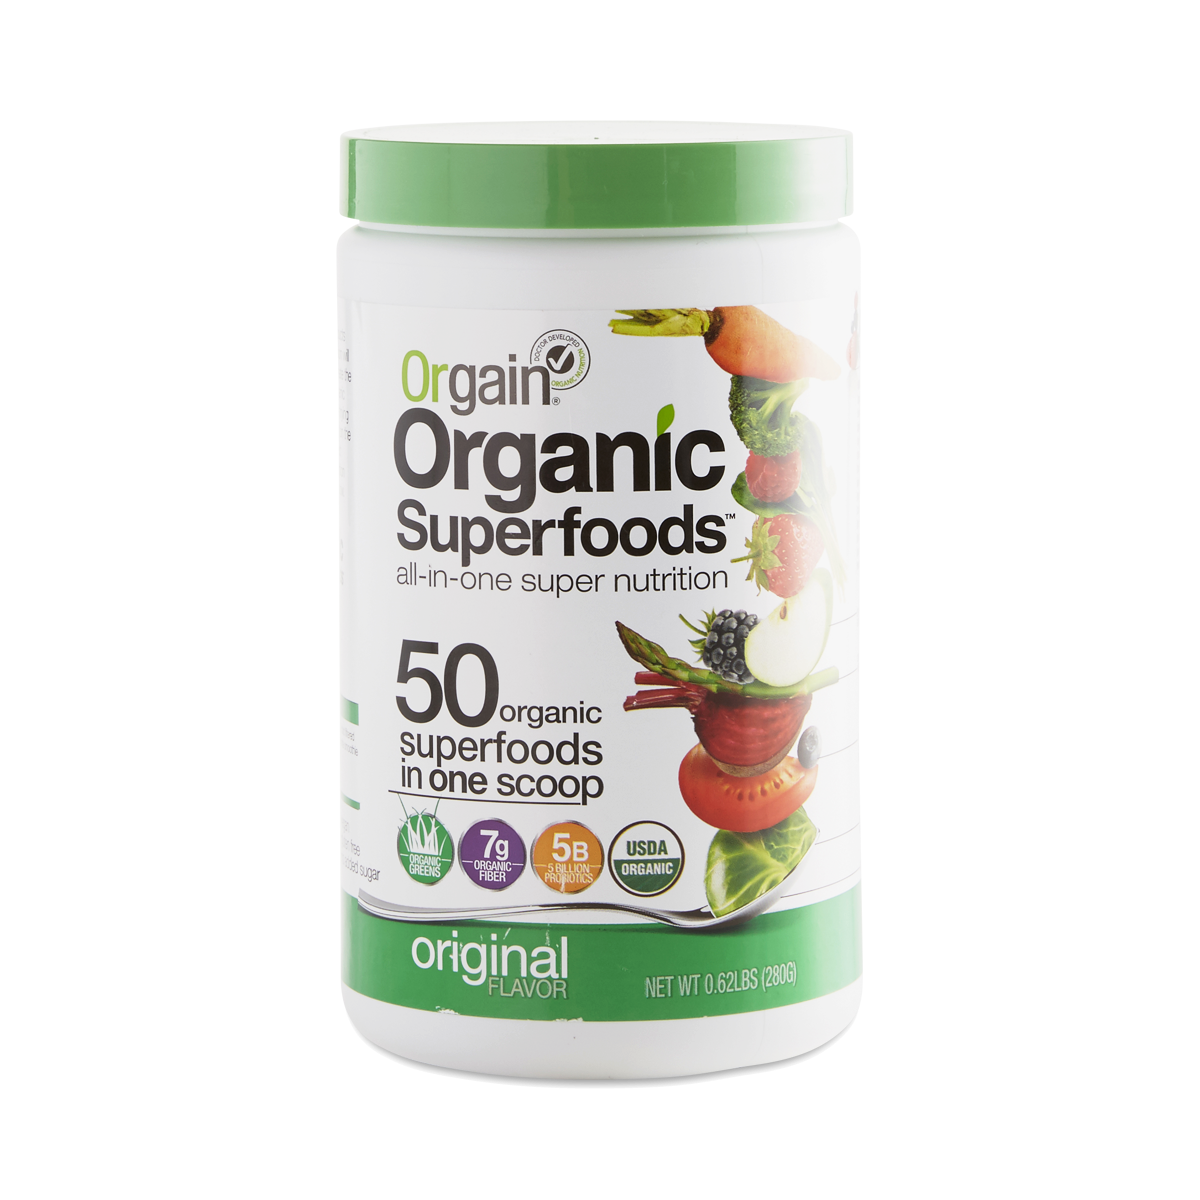 Organic Superfoods Powder By Orgain Thrive Market